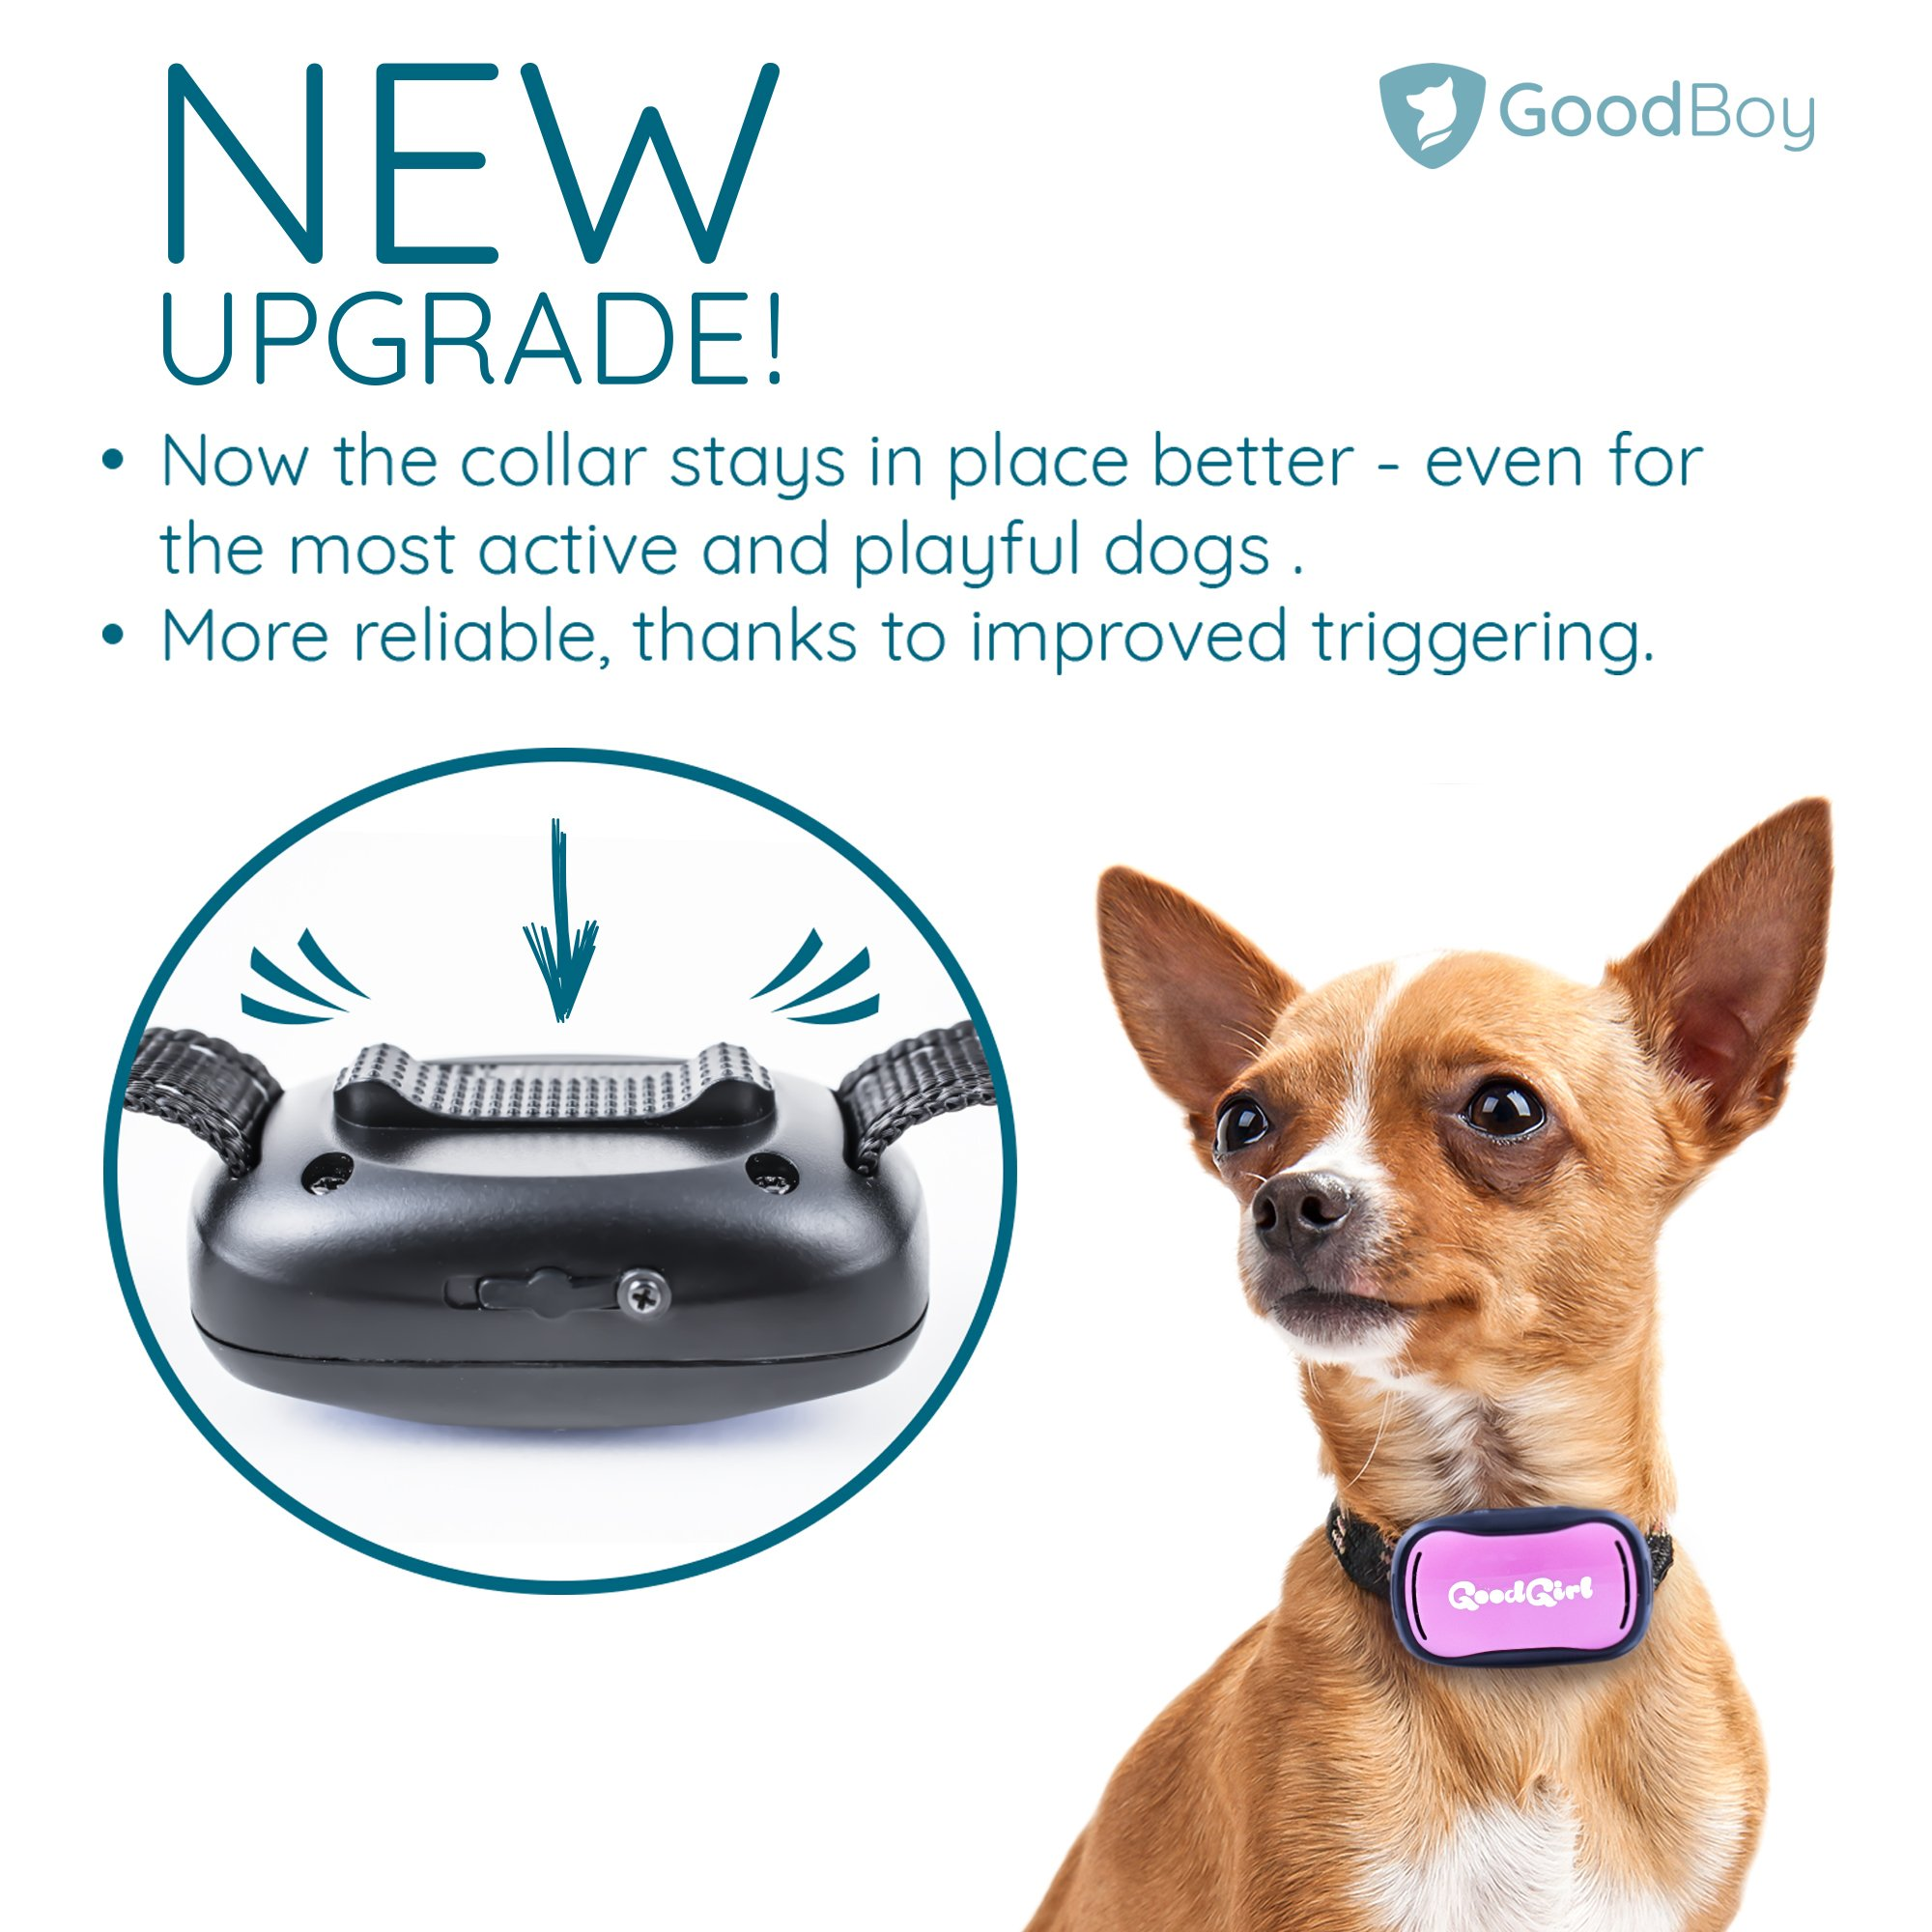 GoodBoy Small Rechargeable Dog Bark Collar for Tiny to Medium Dogs Waterproof and Vibrating Anti Bark Training Device That is Smallest & Most Safe On Amazon - No Shock No Spiky Prongs! (6+ lbs) by GoodBoy (Image #4)